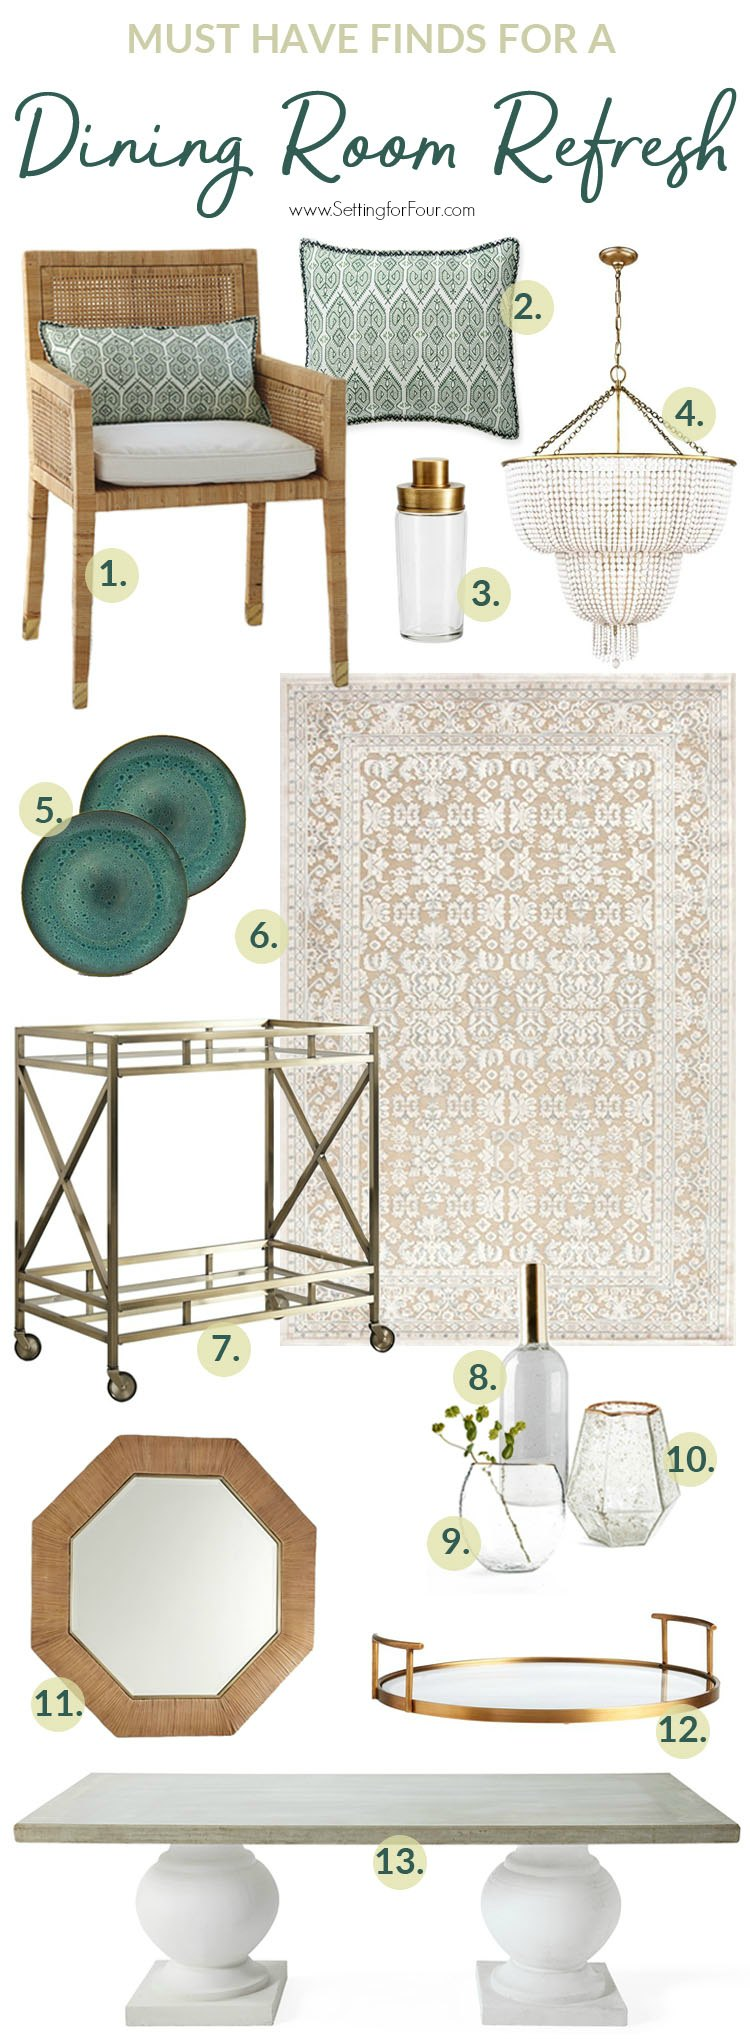 Must Have Finds for a GORGEOUS Dining Room Refresh! #diningroom #decor #design #decorideas #decoratingideas #makeover #furniture